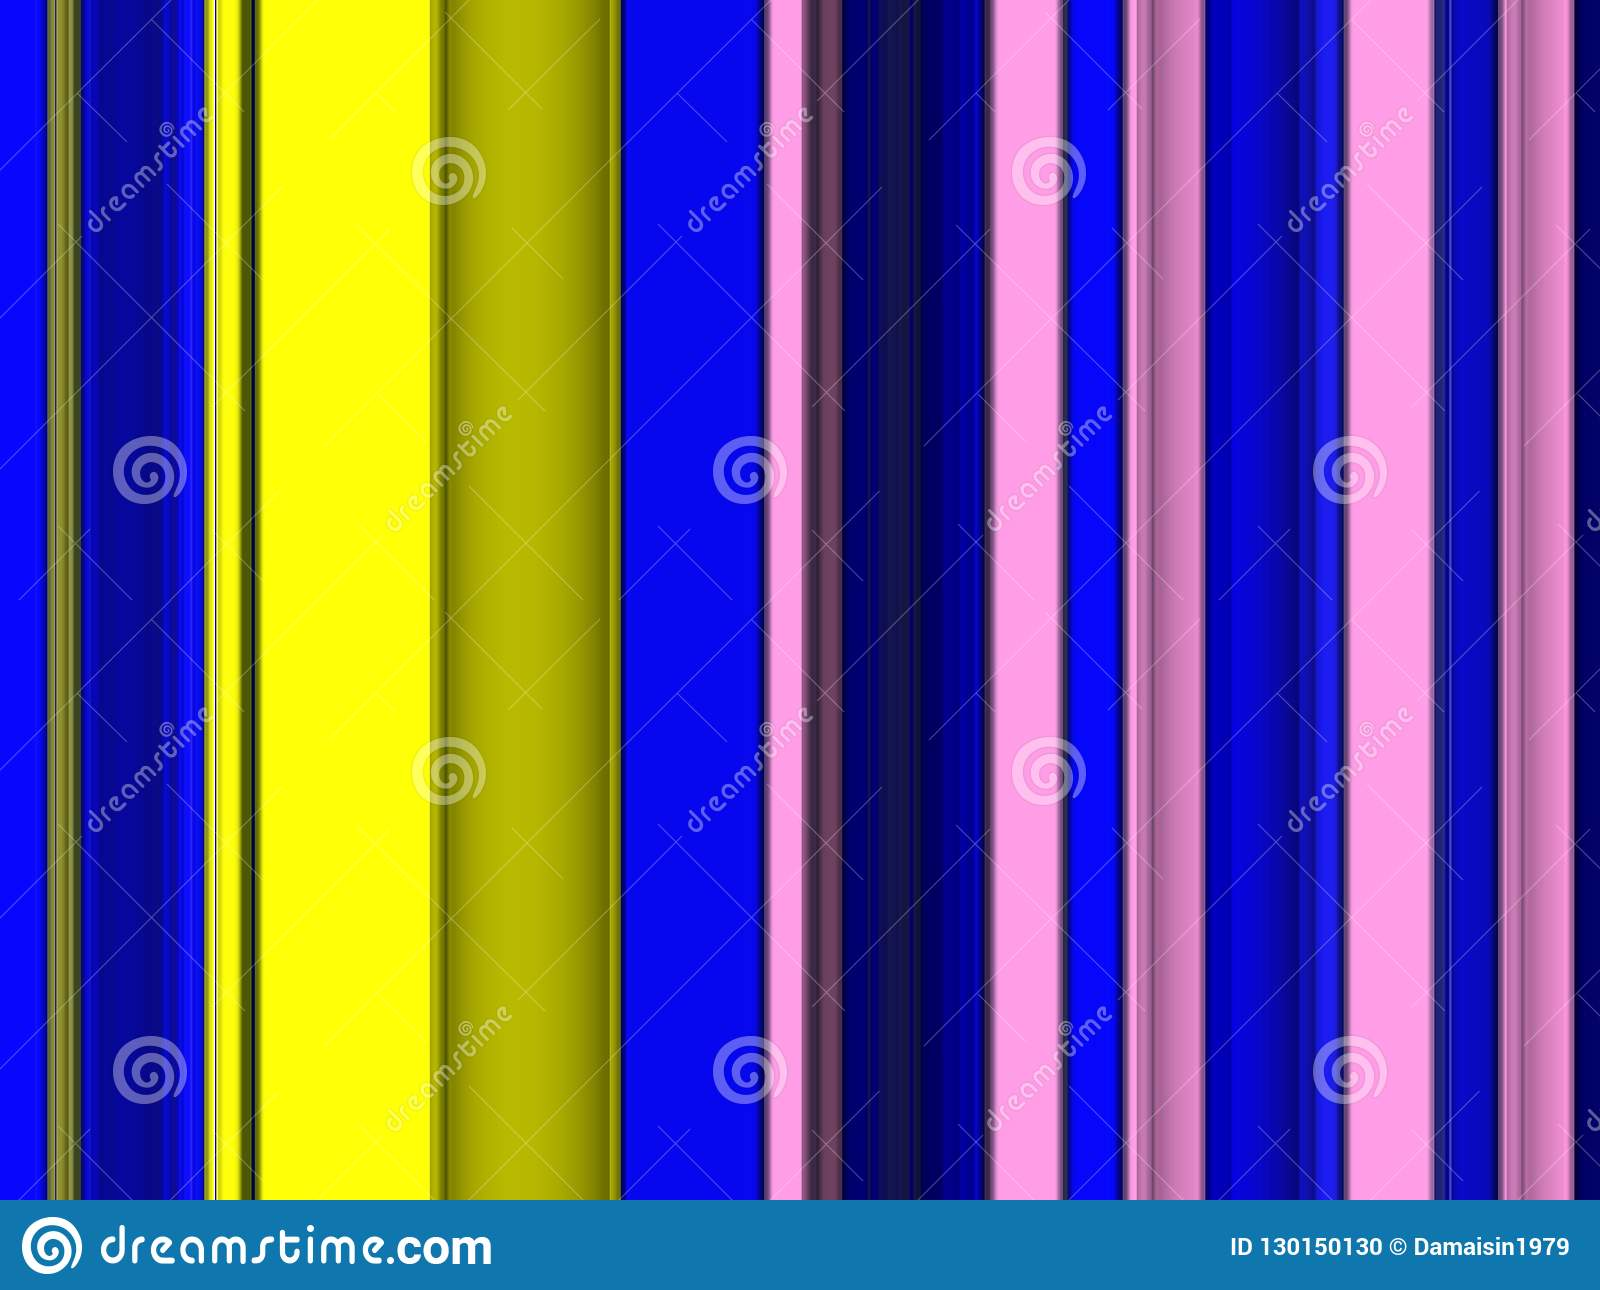 blue yellow pink vivid shapes background abstract colorful